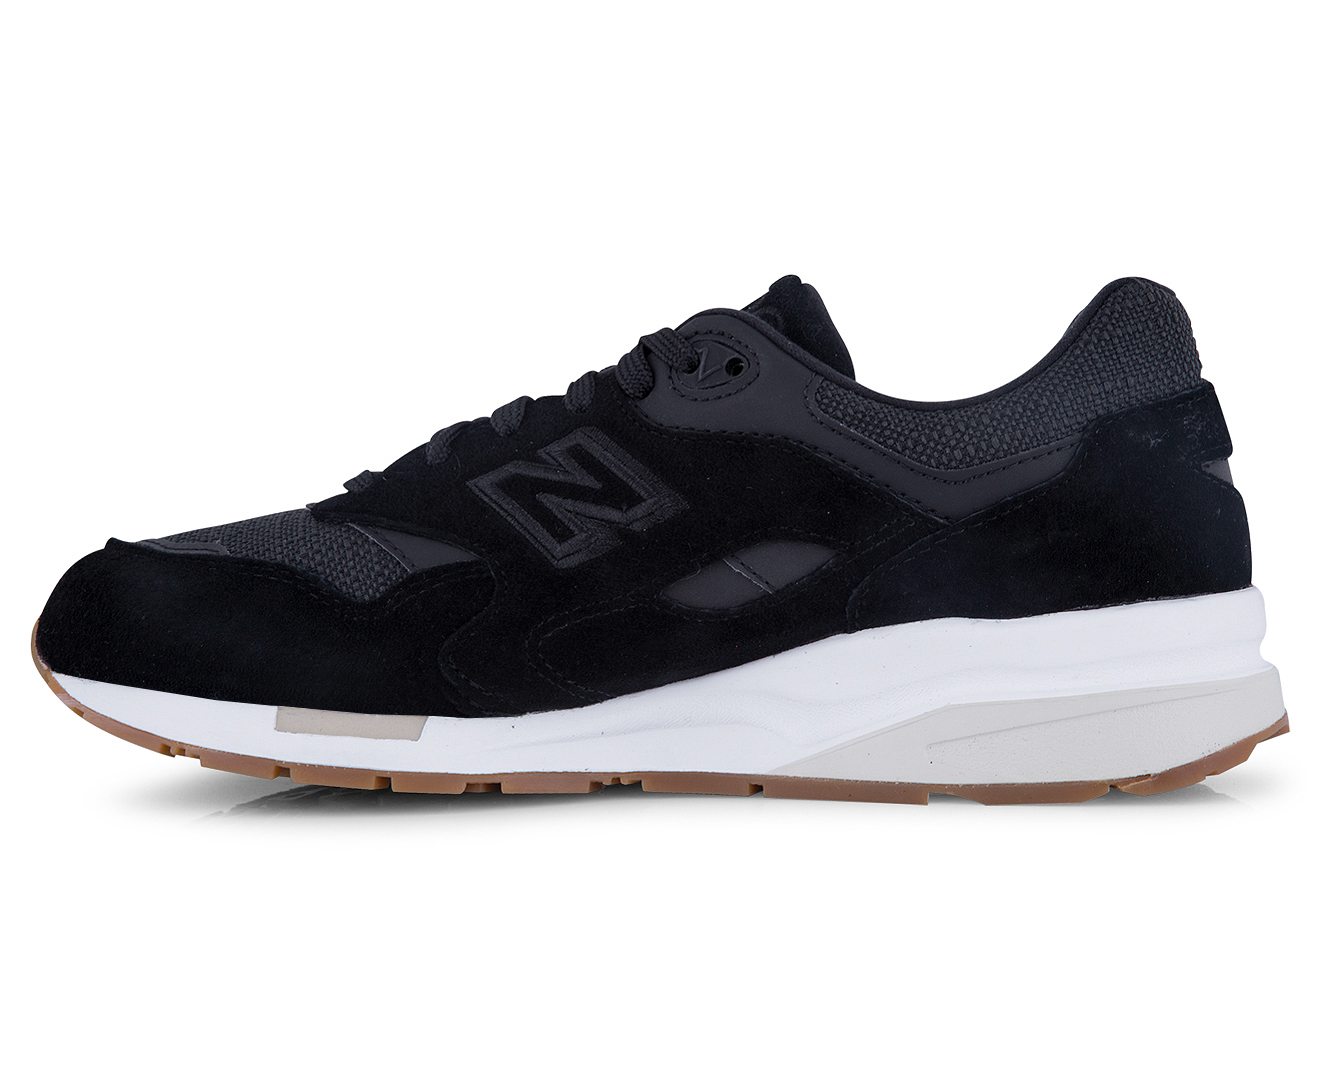 New Balance Women S 1600 Shoe Black Scoopon Shopping